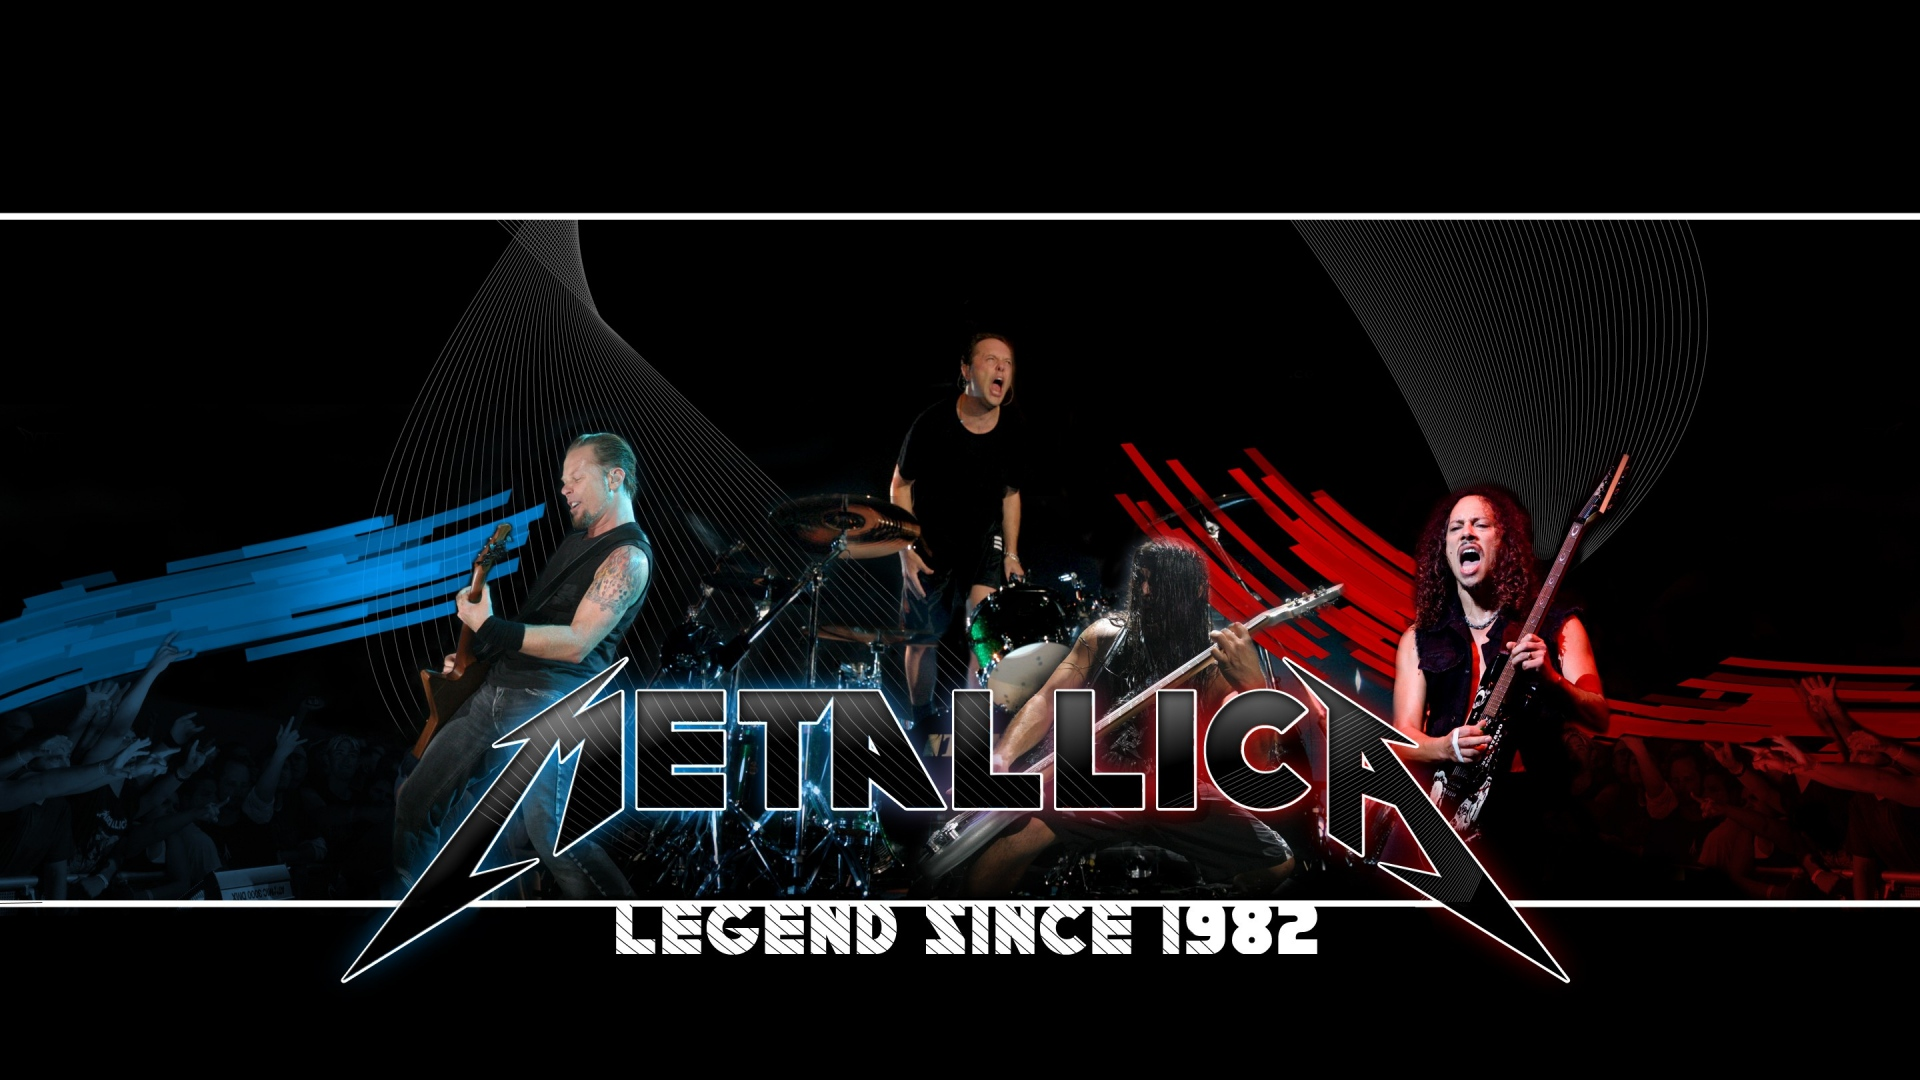 Great Wallpaper High Resolution Metallica - Metallica-High-Definition-Wallpapers  Pictures_12694.jpg